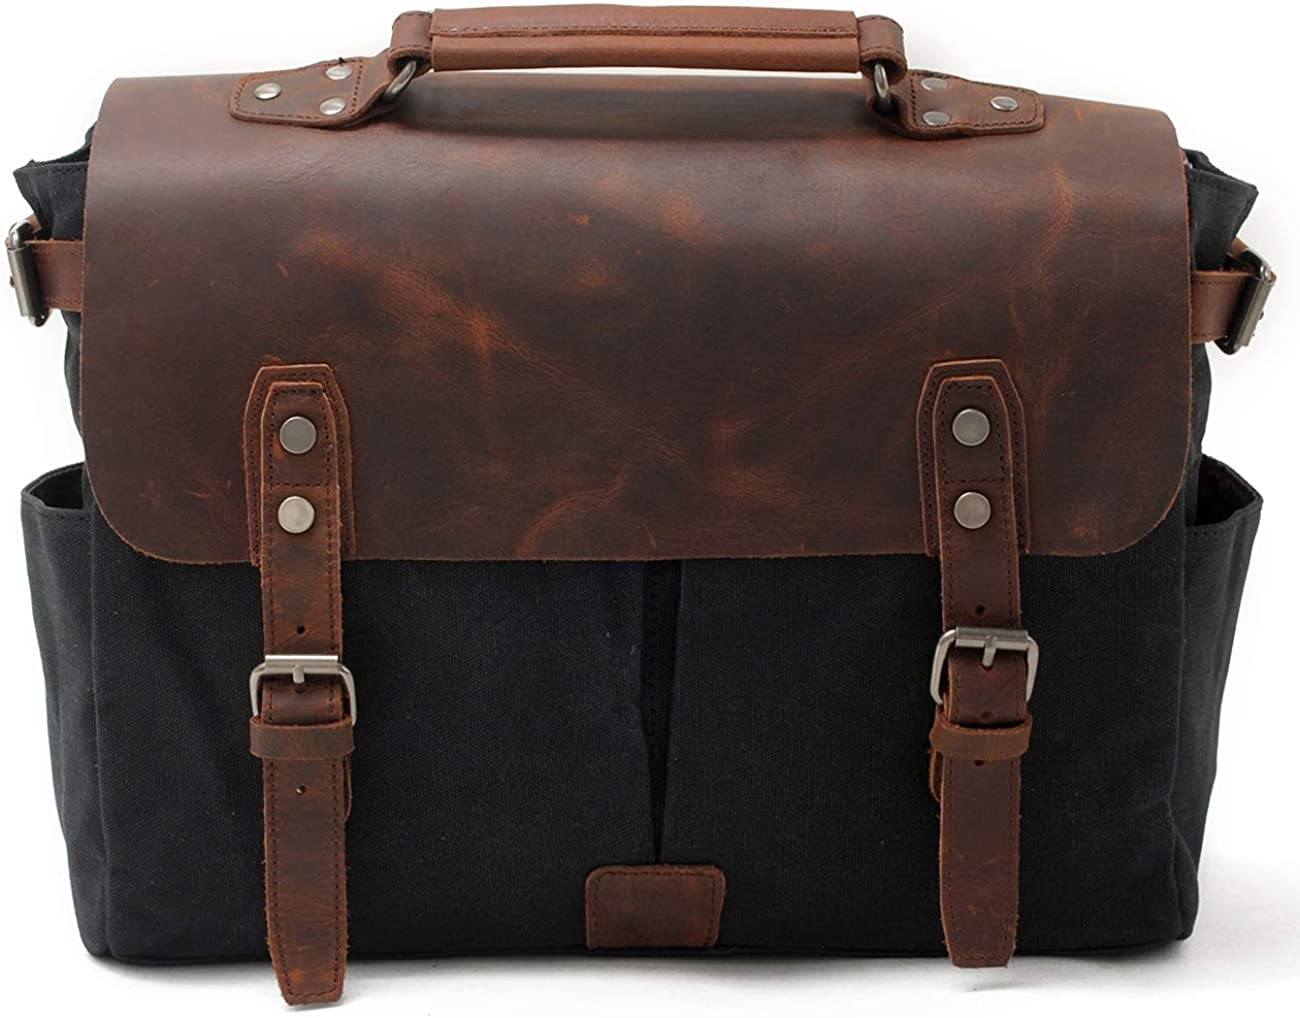 SUVOM Men Messenger Bag Waxed Canvas Satchel PU Briefcase for 14 Inch Laptop